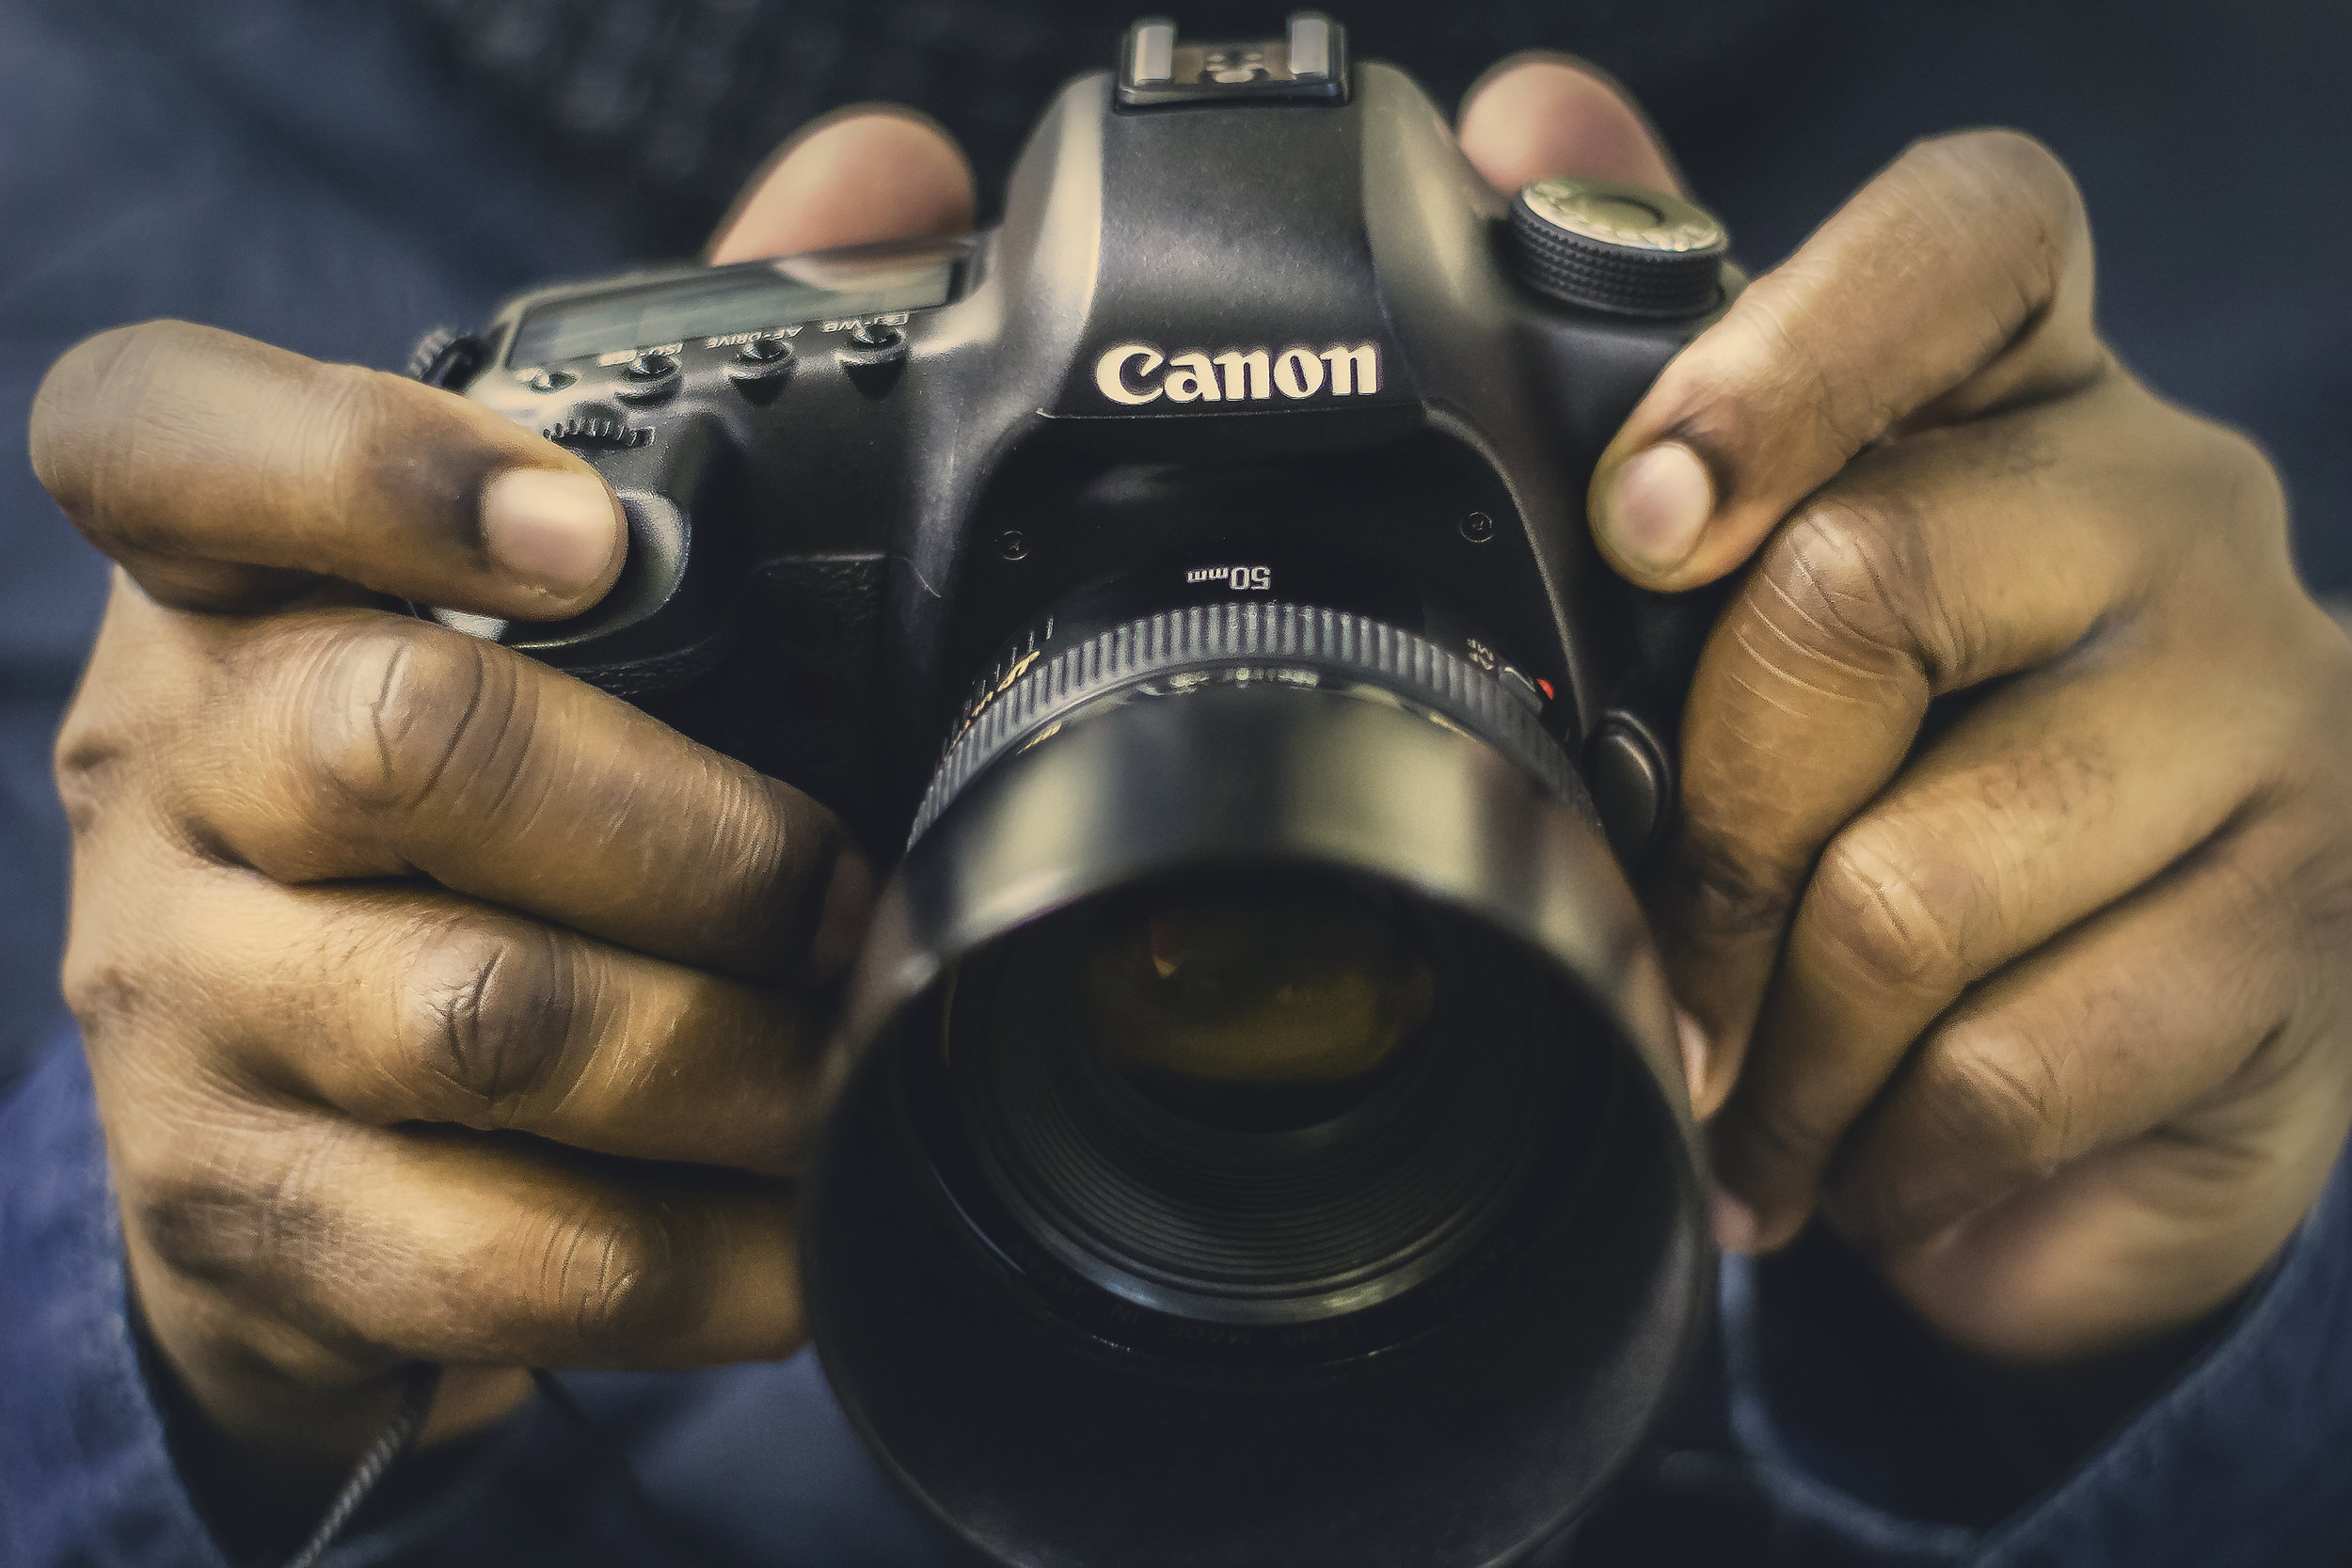 Digital Photography - Add a personal touch to your website with a professional photographer from Louis Web Designs. Depending on the type of website you want, it might be better to use real life photographs of members on your team, products you sell or events you put together.